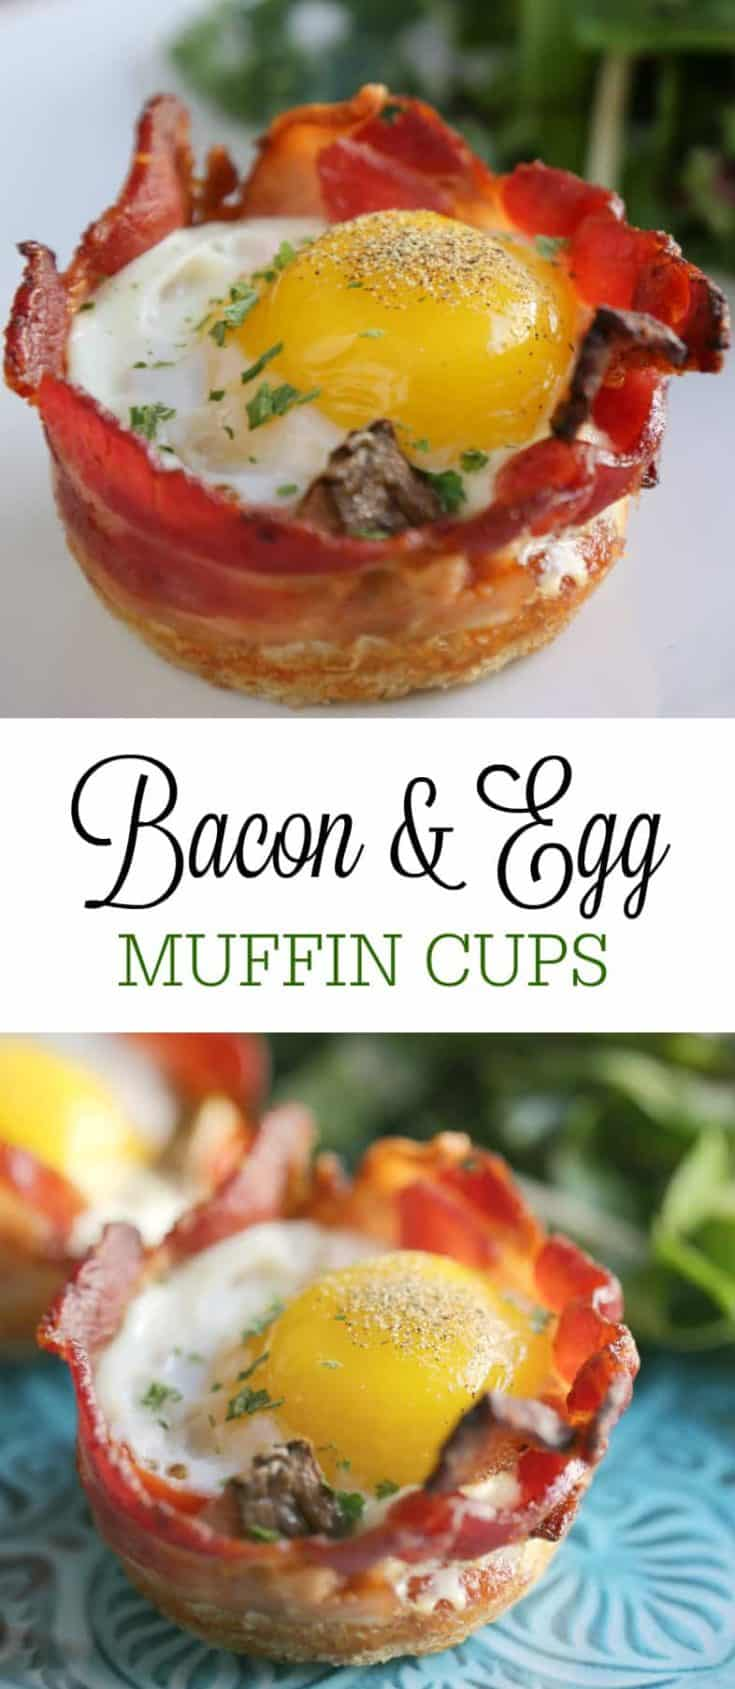 These two champion ingredients are the stars in one of my favourite easy breakfasts or brunches - Bacon & Egg Muffin Cups. #lowcarb #baconeggcups #keto